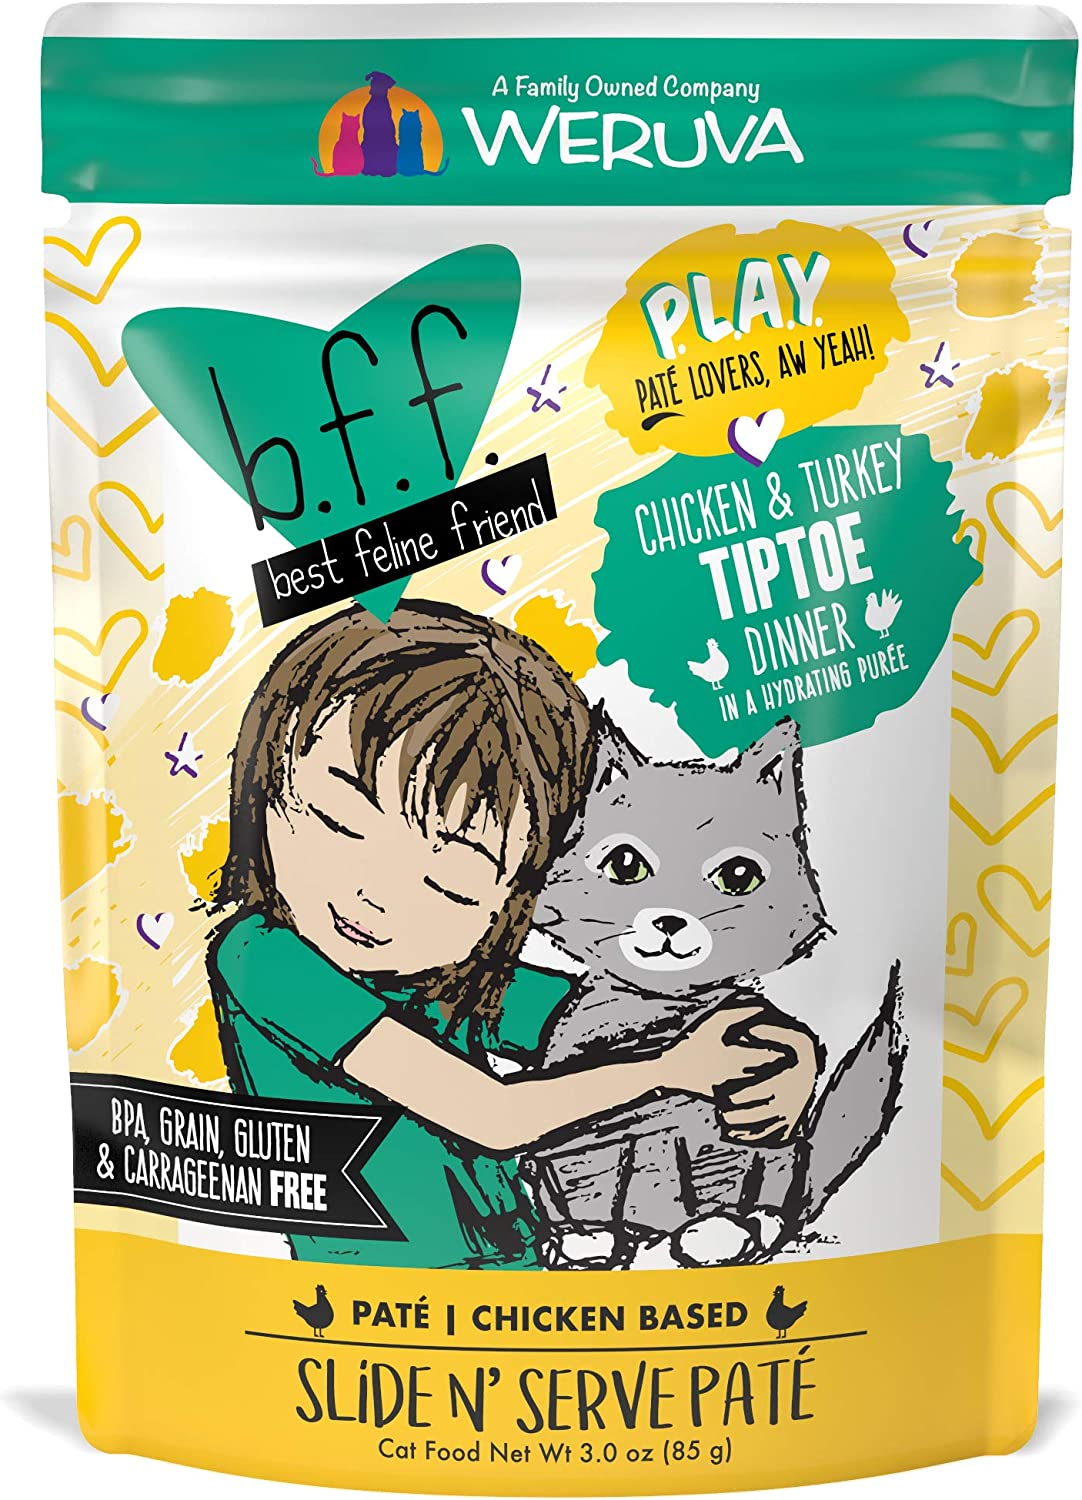 B.F.F. PLAY - Best Feline Friend Paté Lovers, Aw Yeah!, Chicken & Turkey Tiptoe with Chicken & Turkey, 3oz Pouch (Pack of 12)